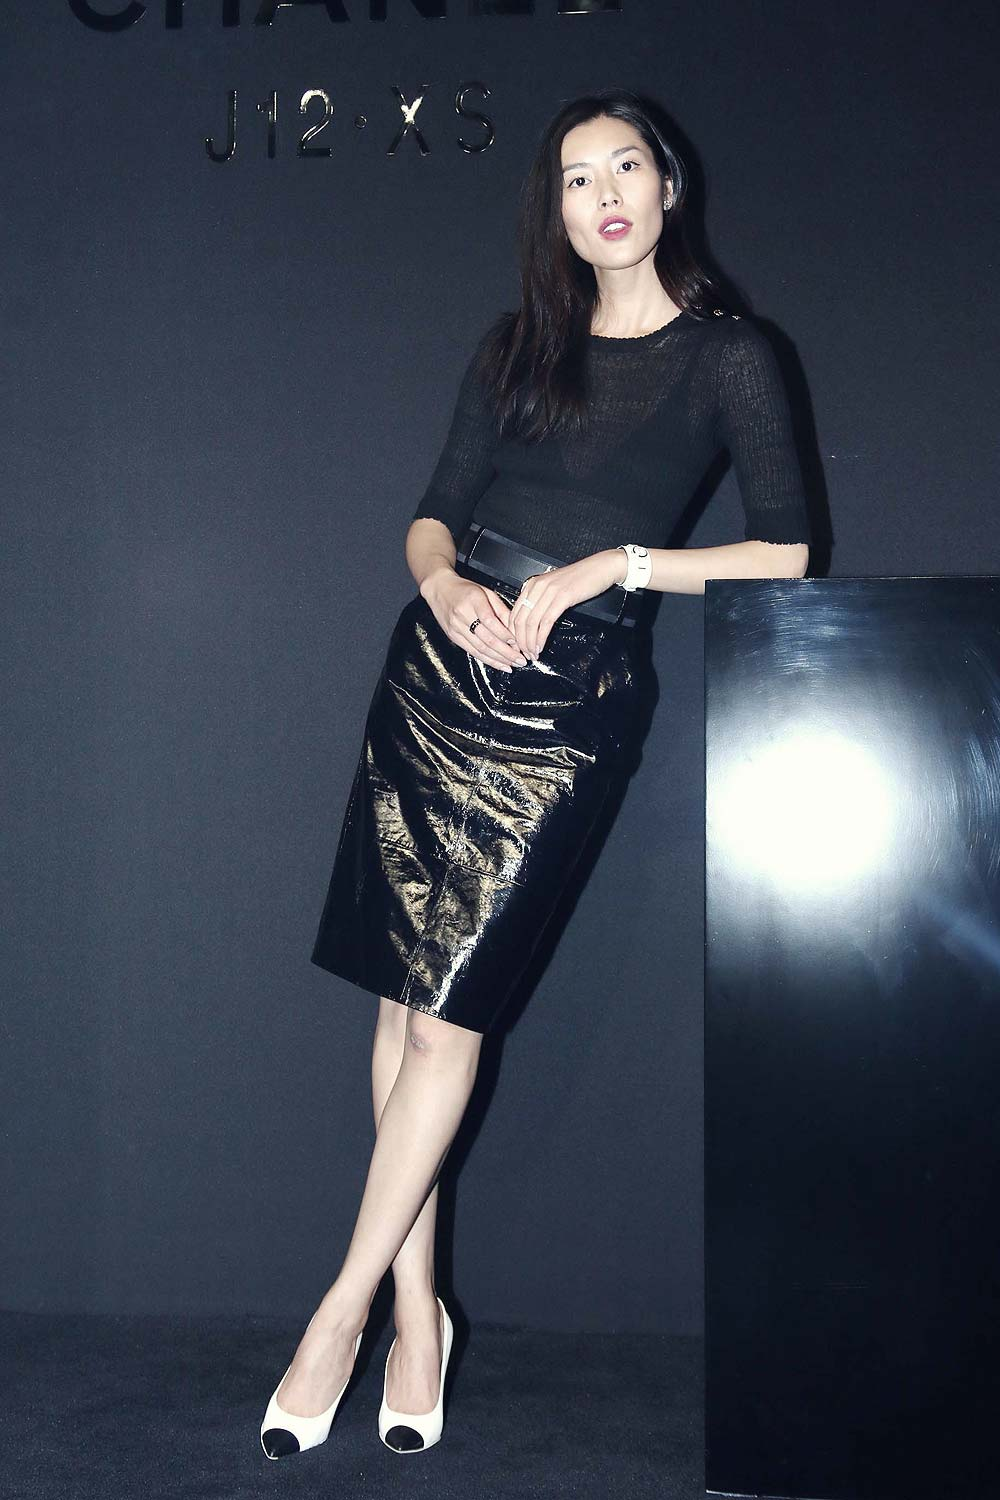 Liu Wen poses during the press conference of Chanel J12XS watch